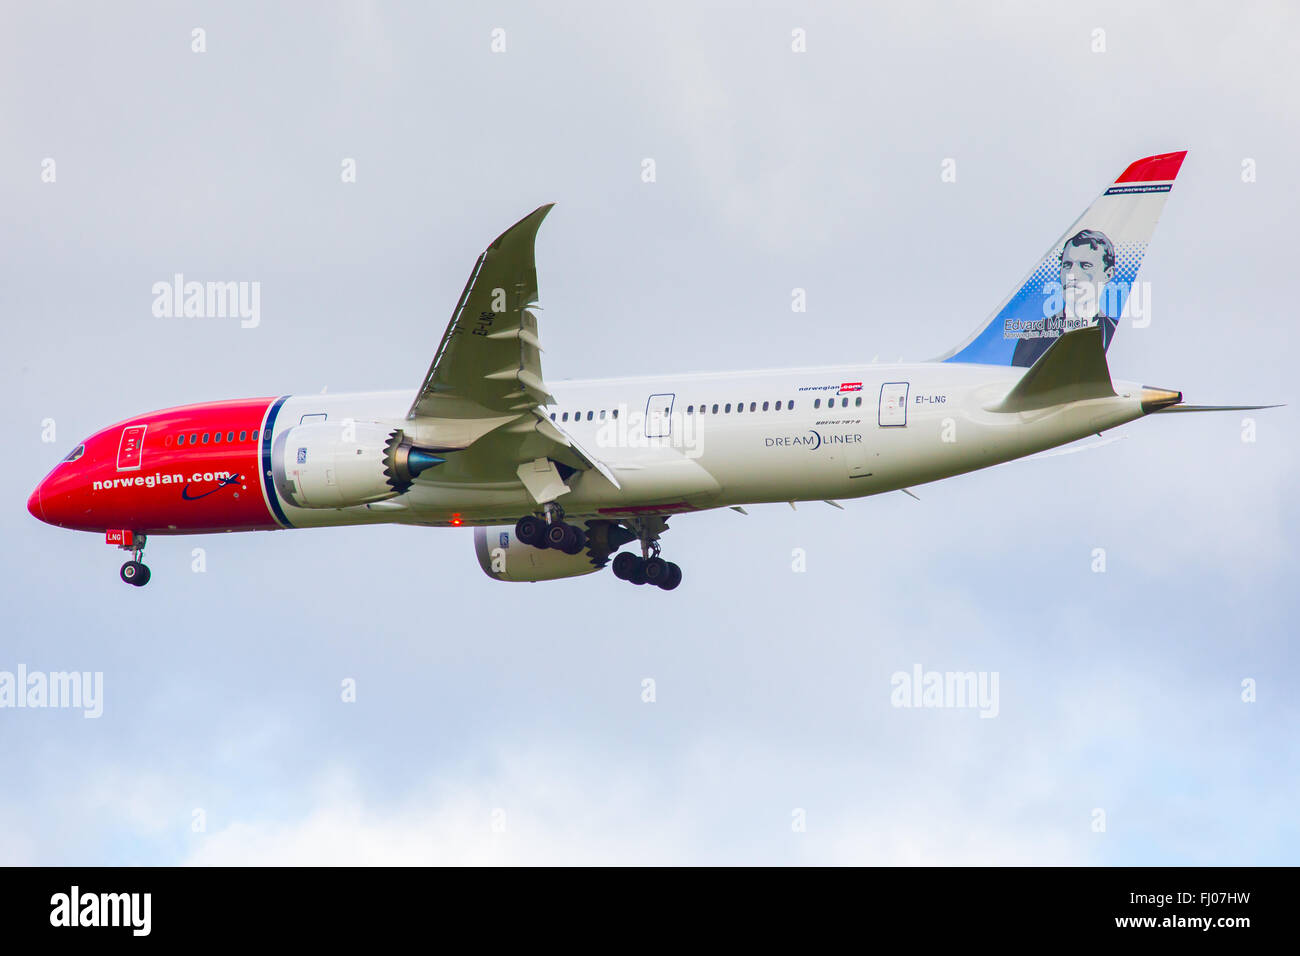 Norwegian Air Shuttle Boeing 787 Dreamliner Stockbild